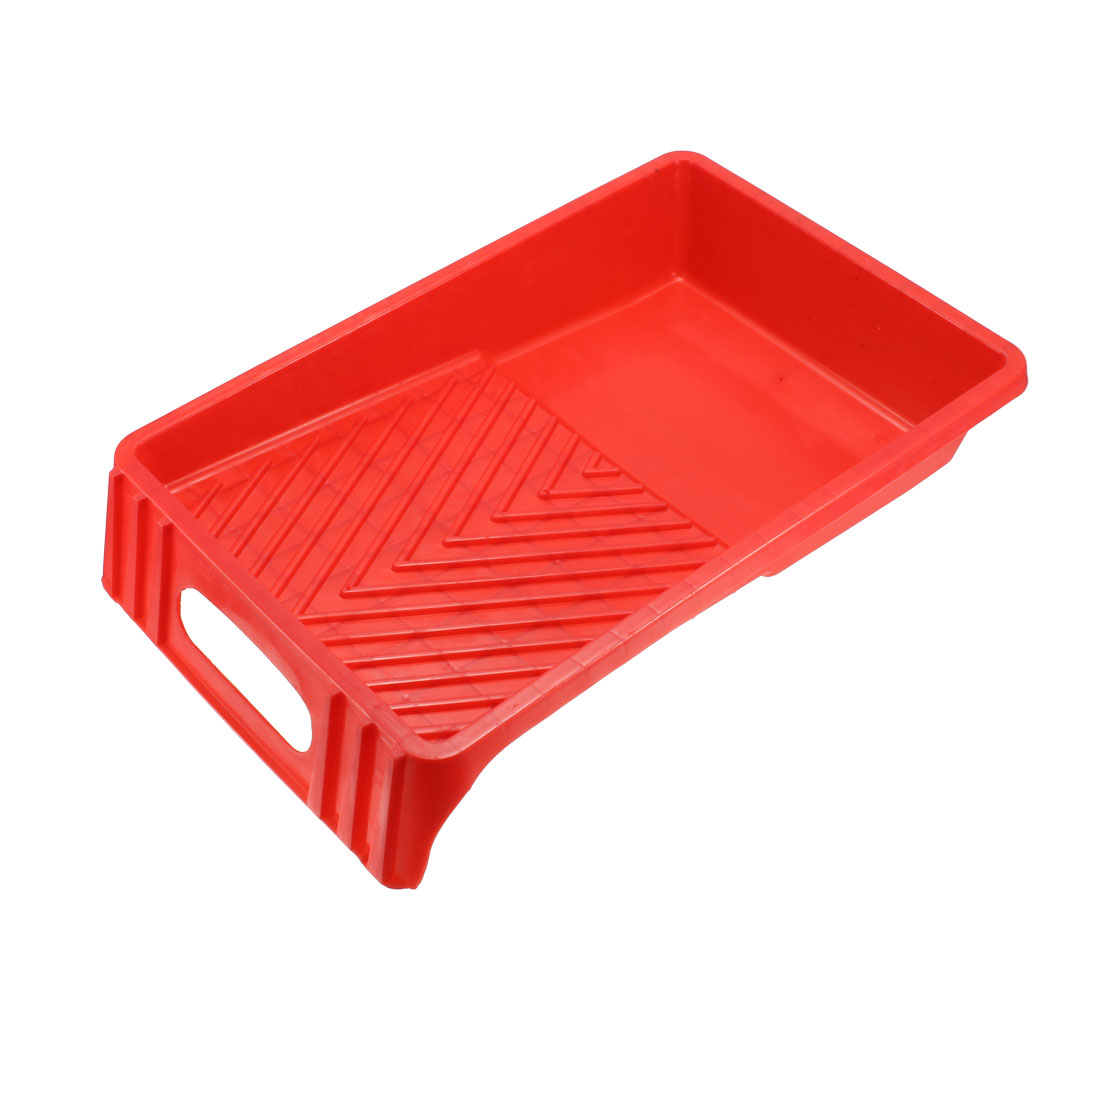 Paint Roller Tray for 7 Inch Plastic Liner for Painting Brush Red